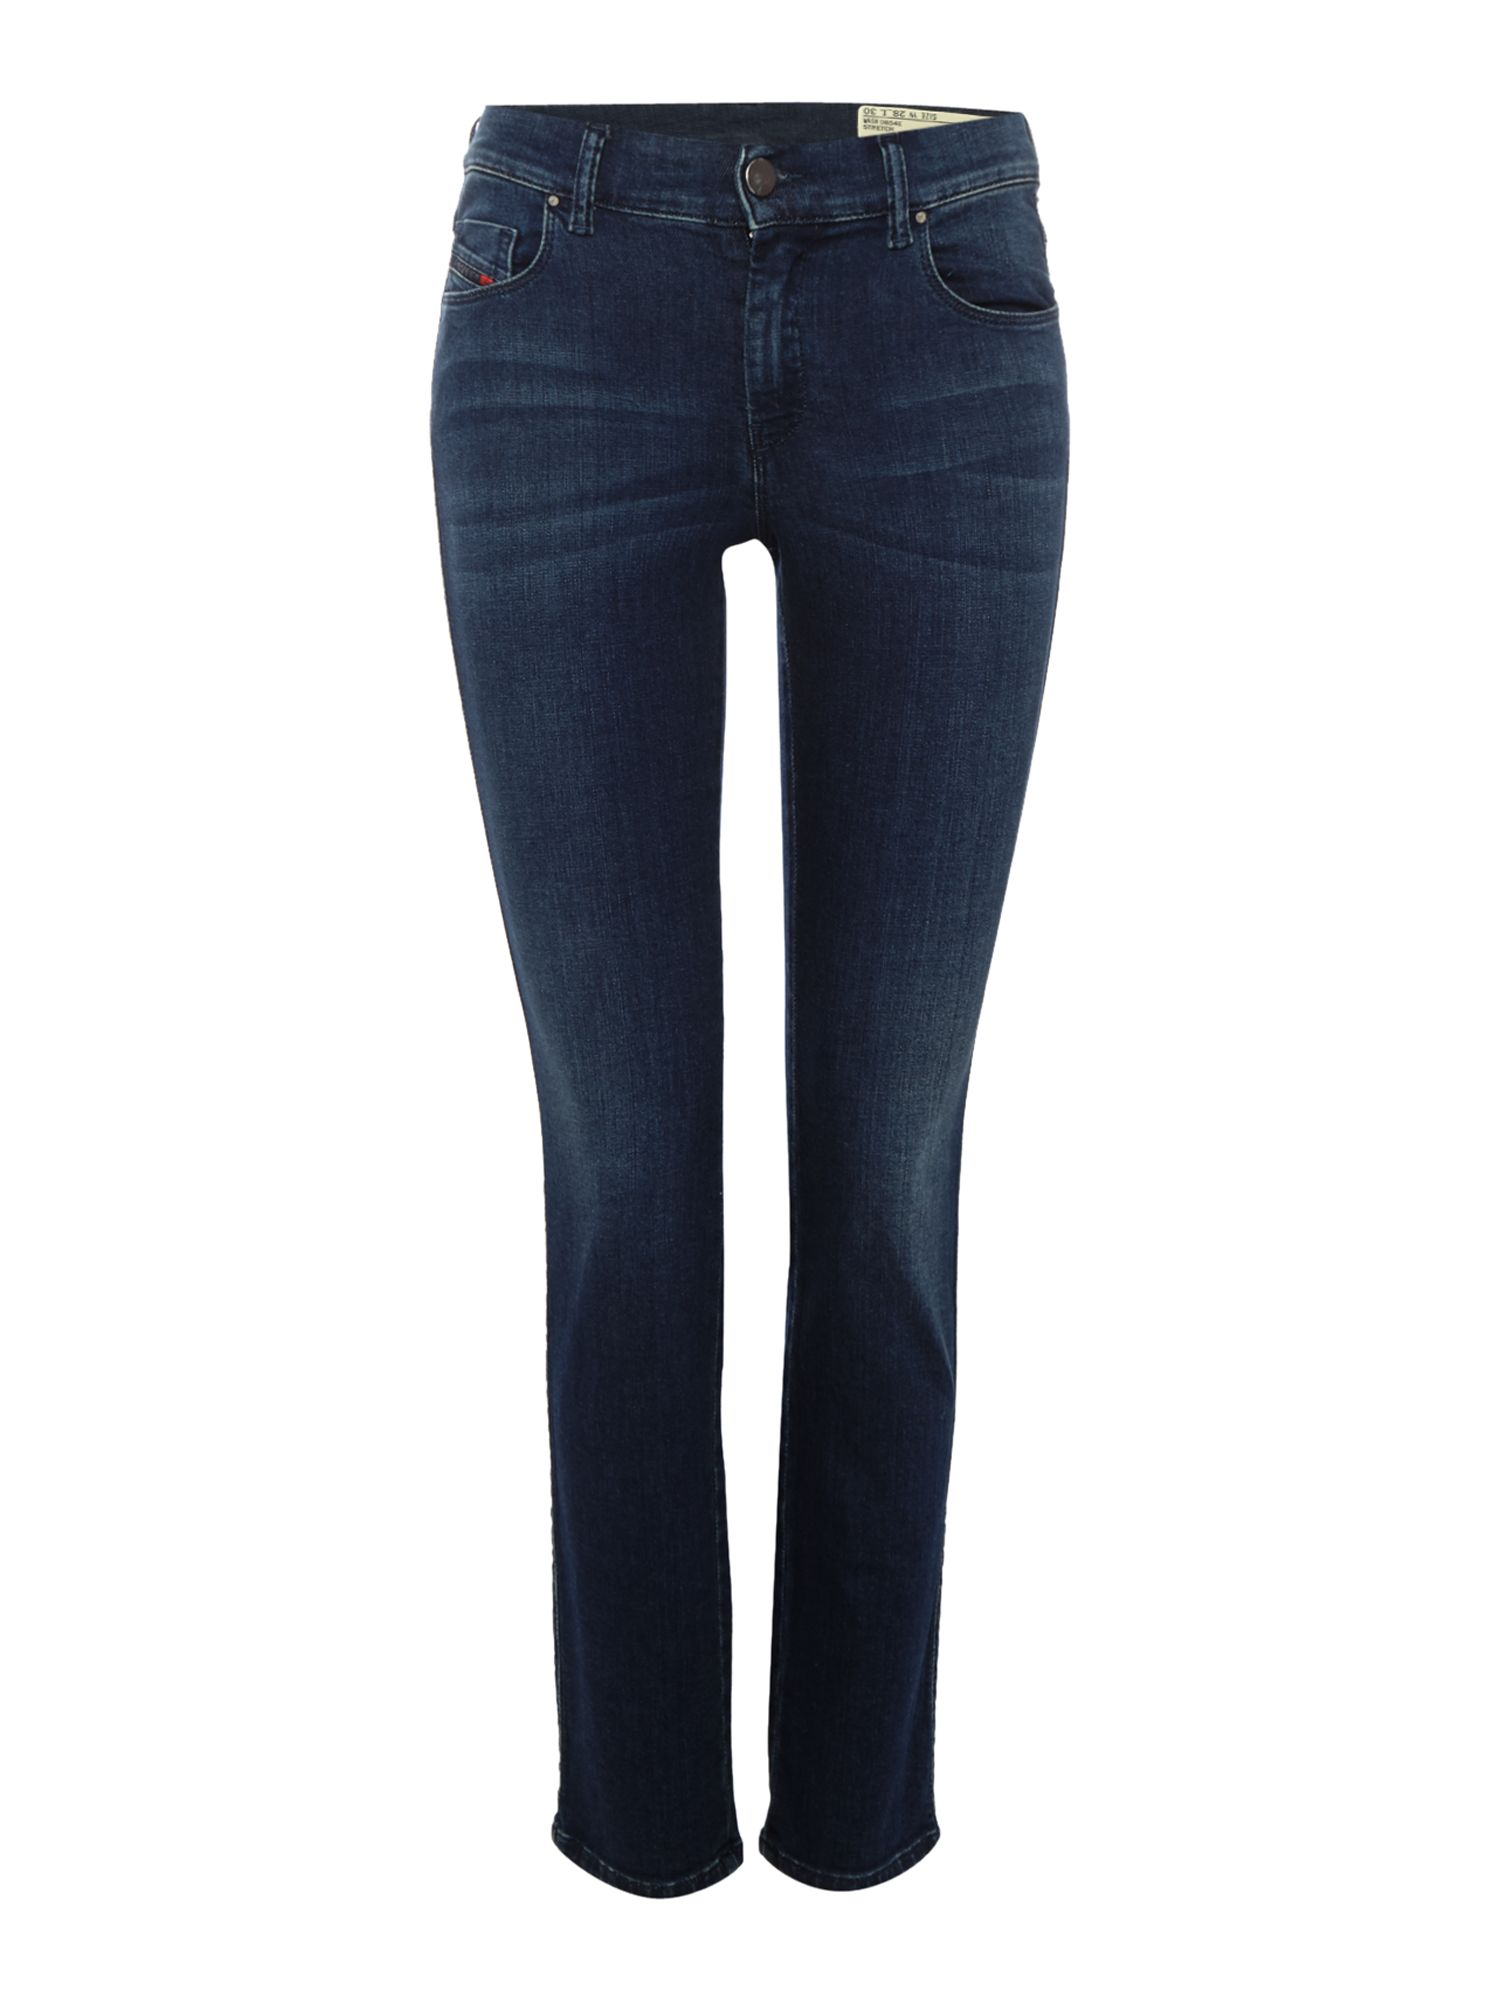 Sandy 0854e Straight Jeans Leg 30, Blue